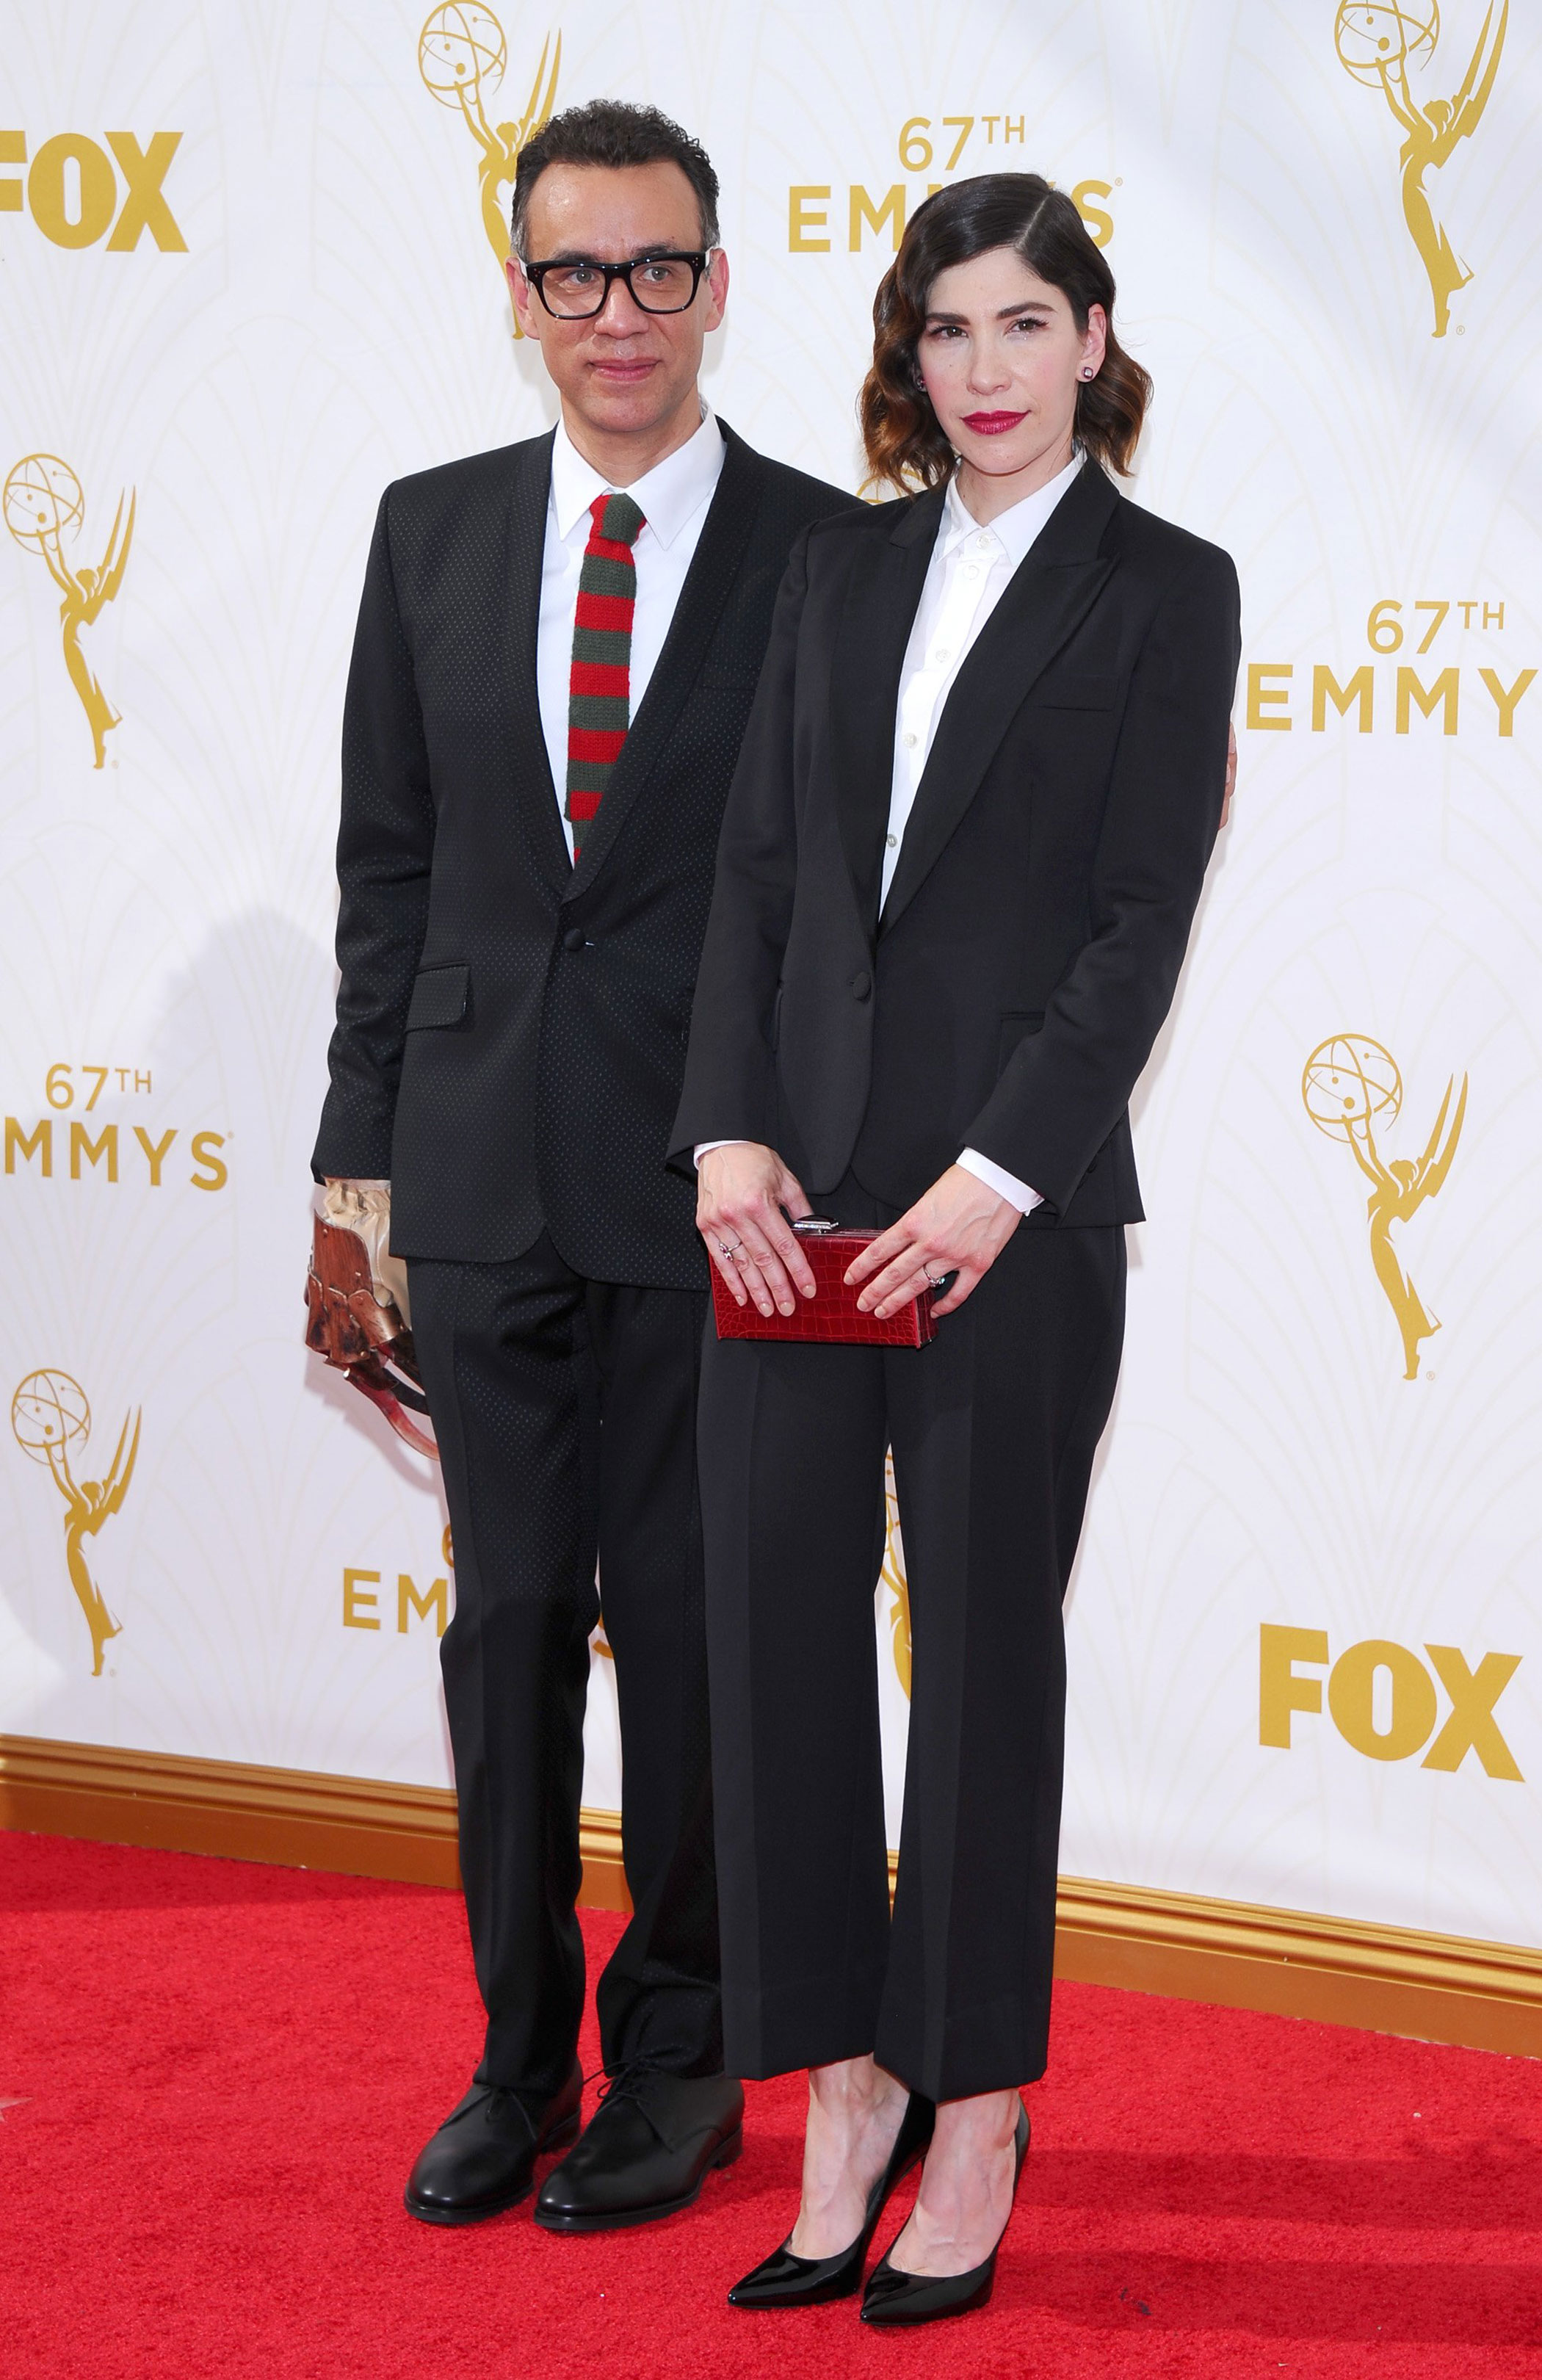 Fred Armisen and Carrie Brownstein at the 67th Emmy Award on Sept. 20, 2015 in Los Angeles.